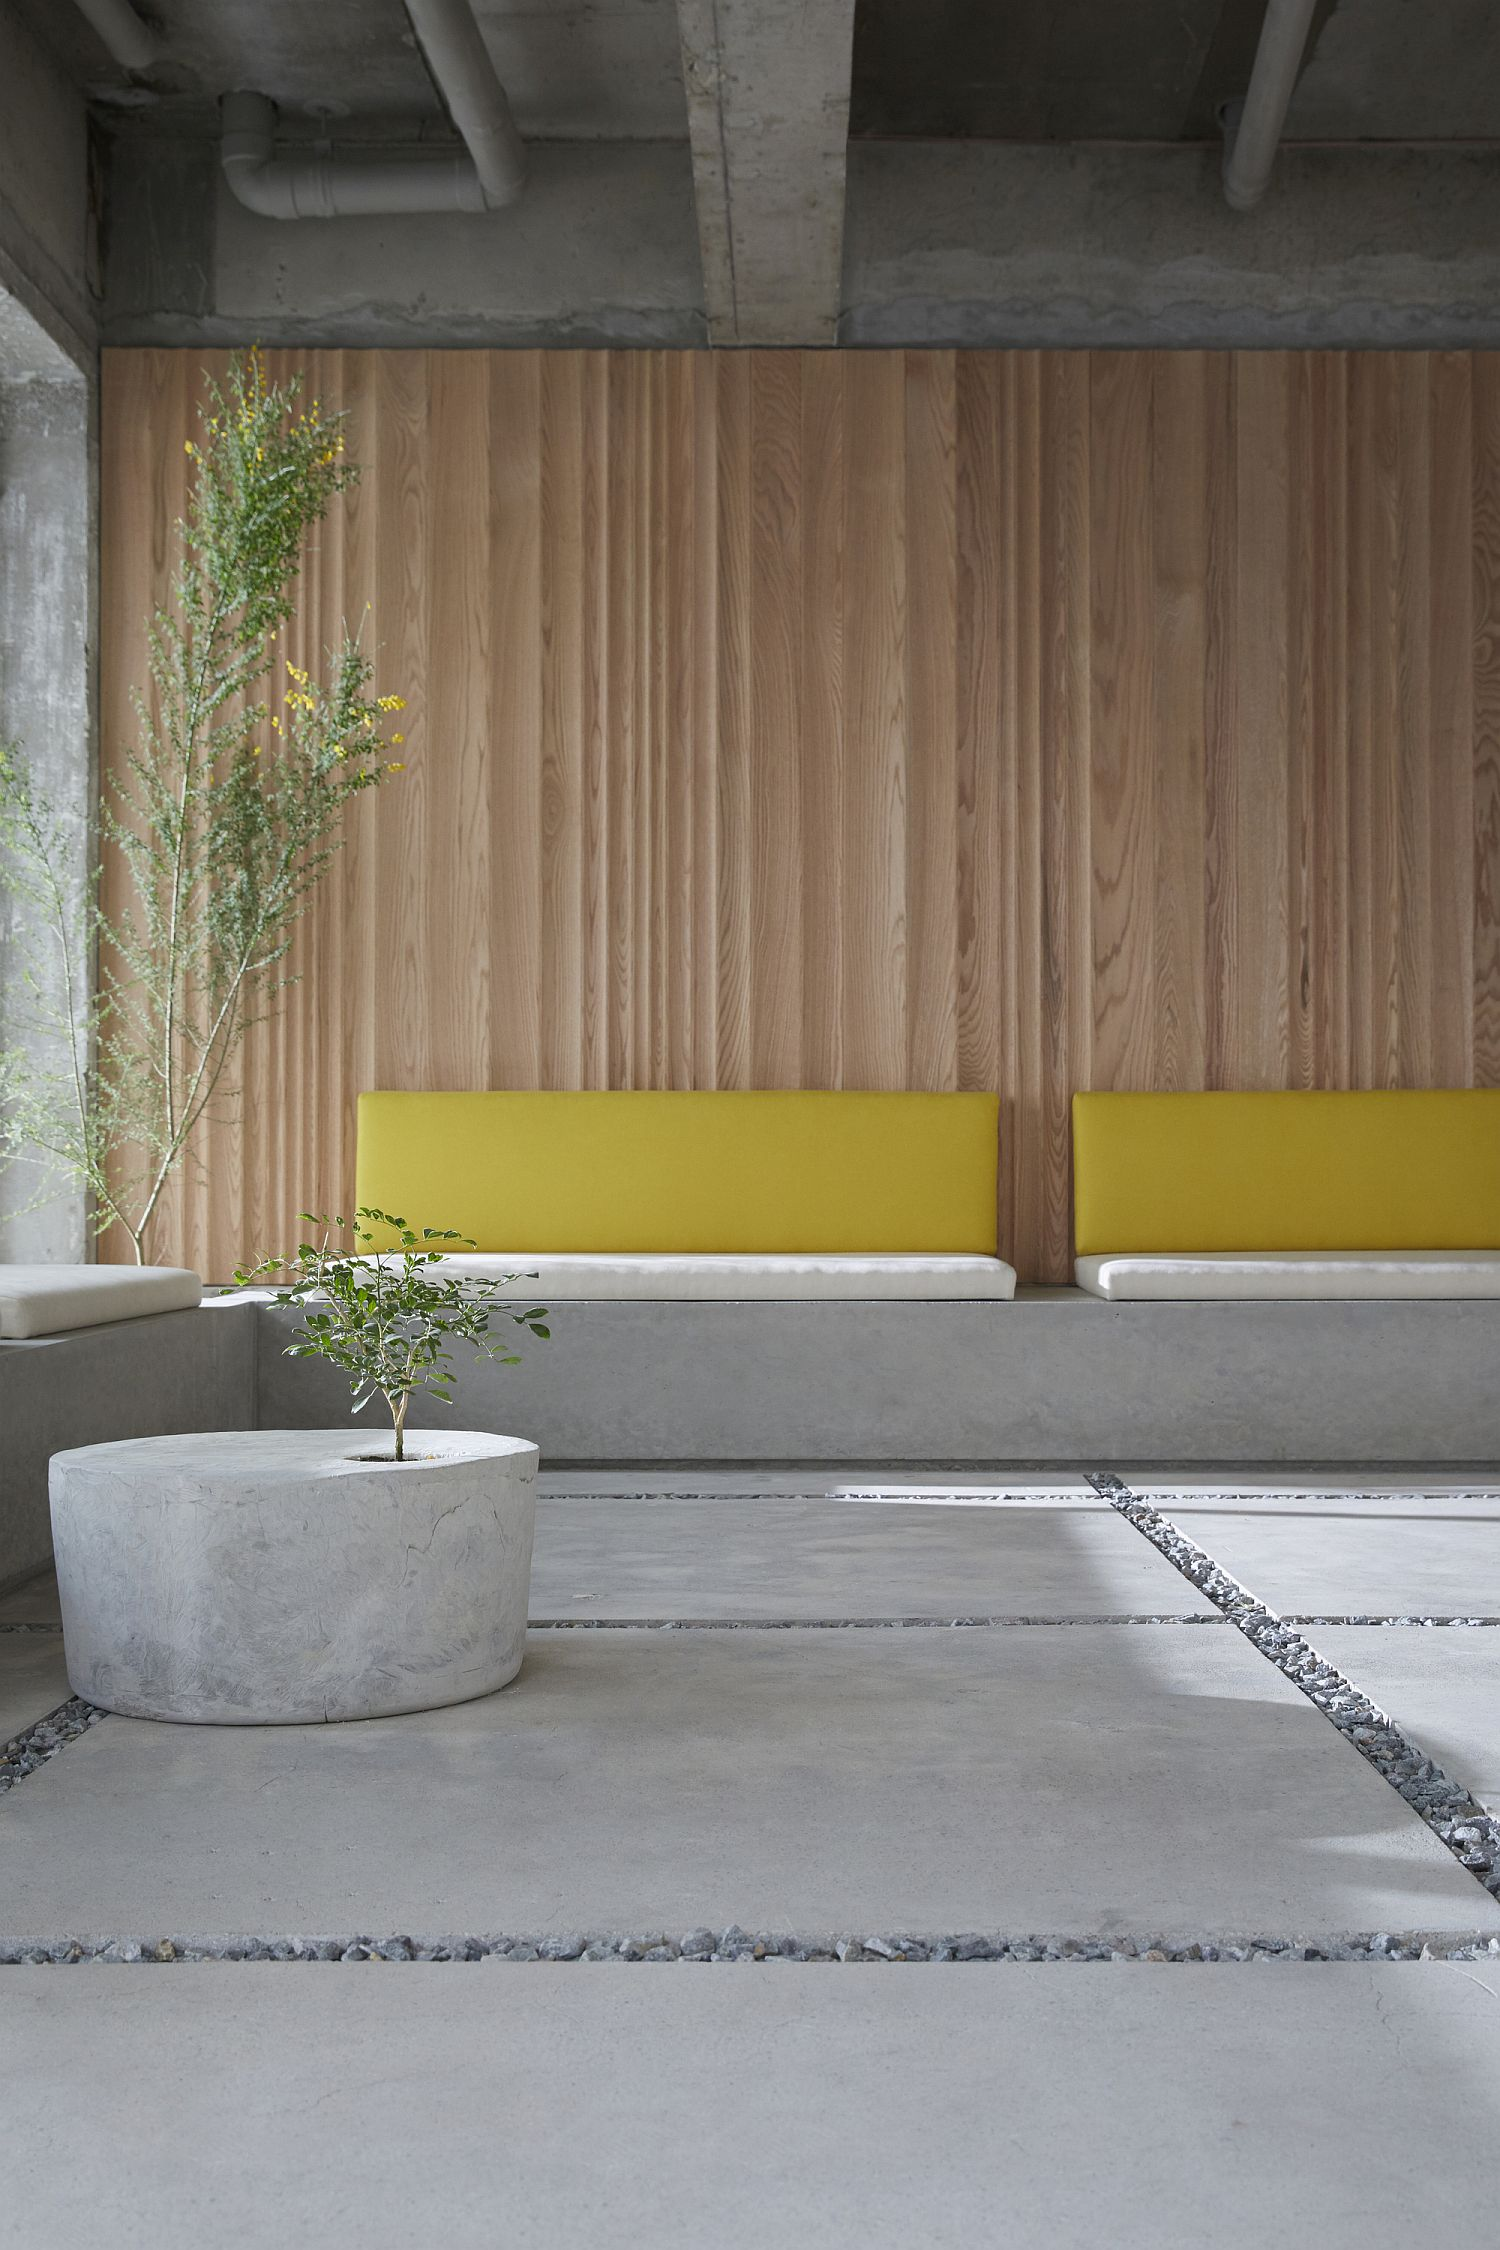 Concrete benches along with comfy cushions provide plenty of sitting space